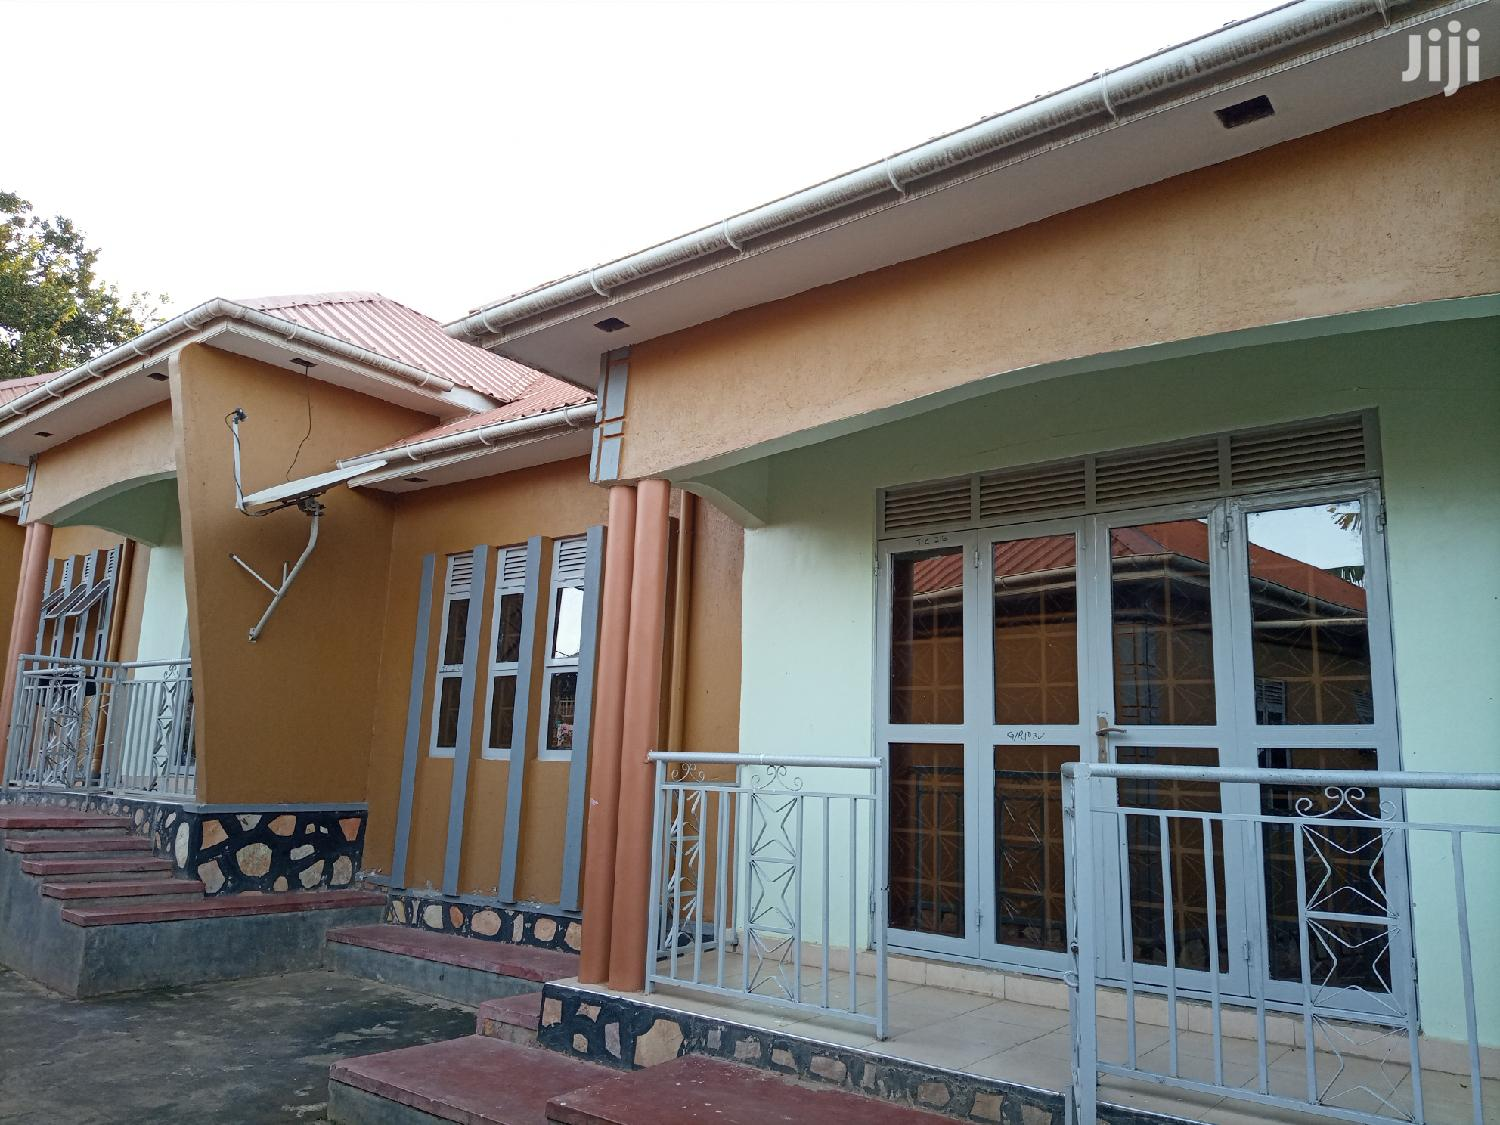 2 Bedrooms House In Ttula Kawempe For Rent